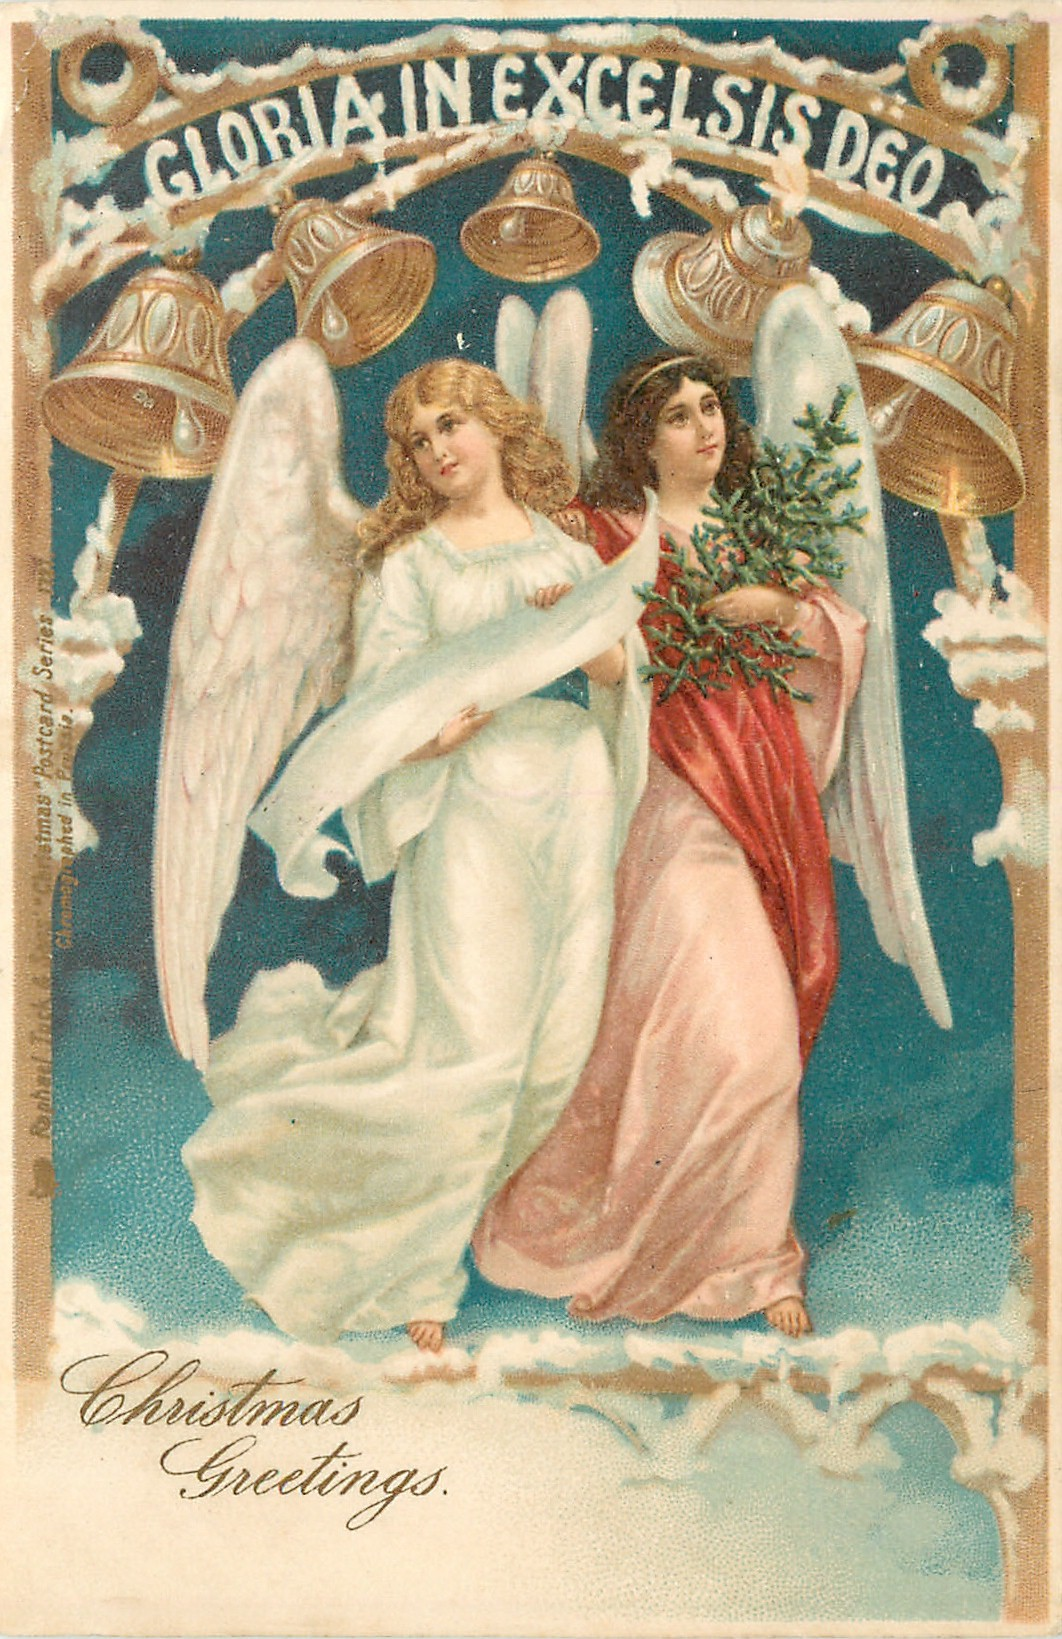 ***CHRISTMAS GREETINGS two angels float under bells & GLORIA IN EXCELSIS DEO - TuckDB Postcards